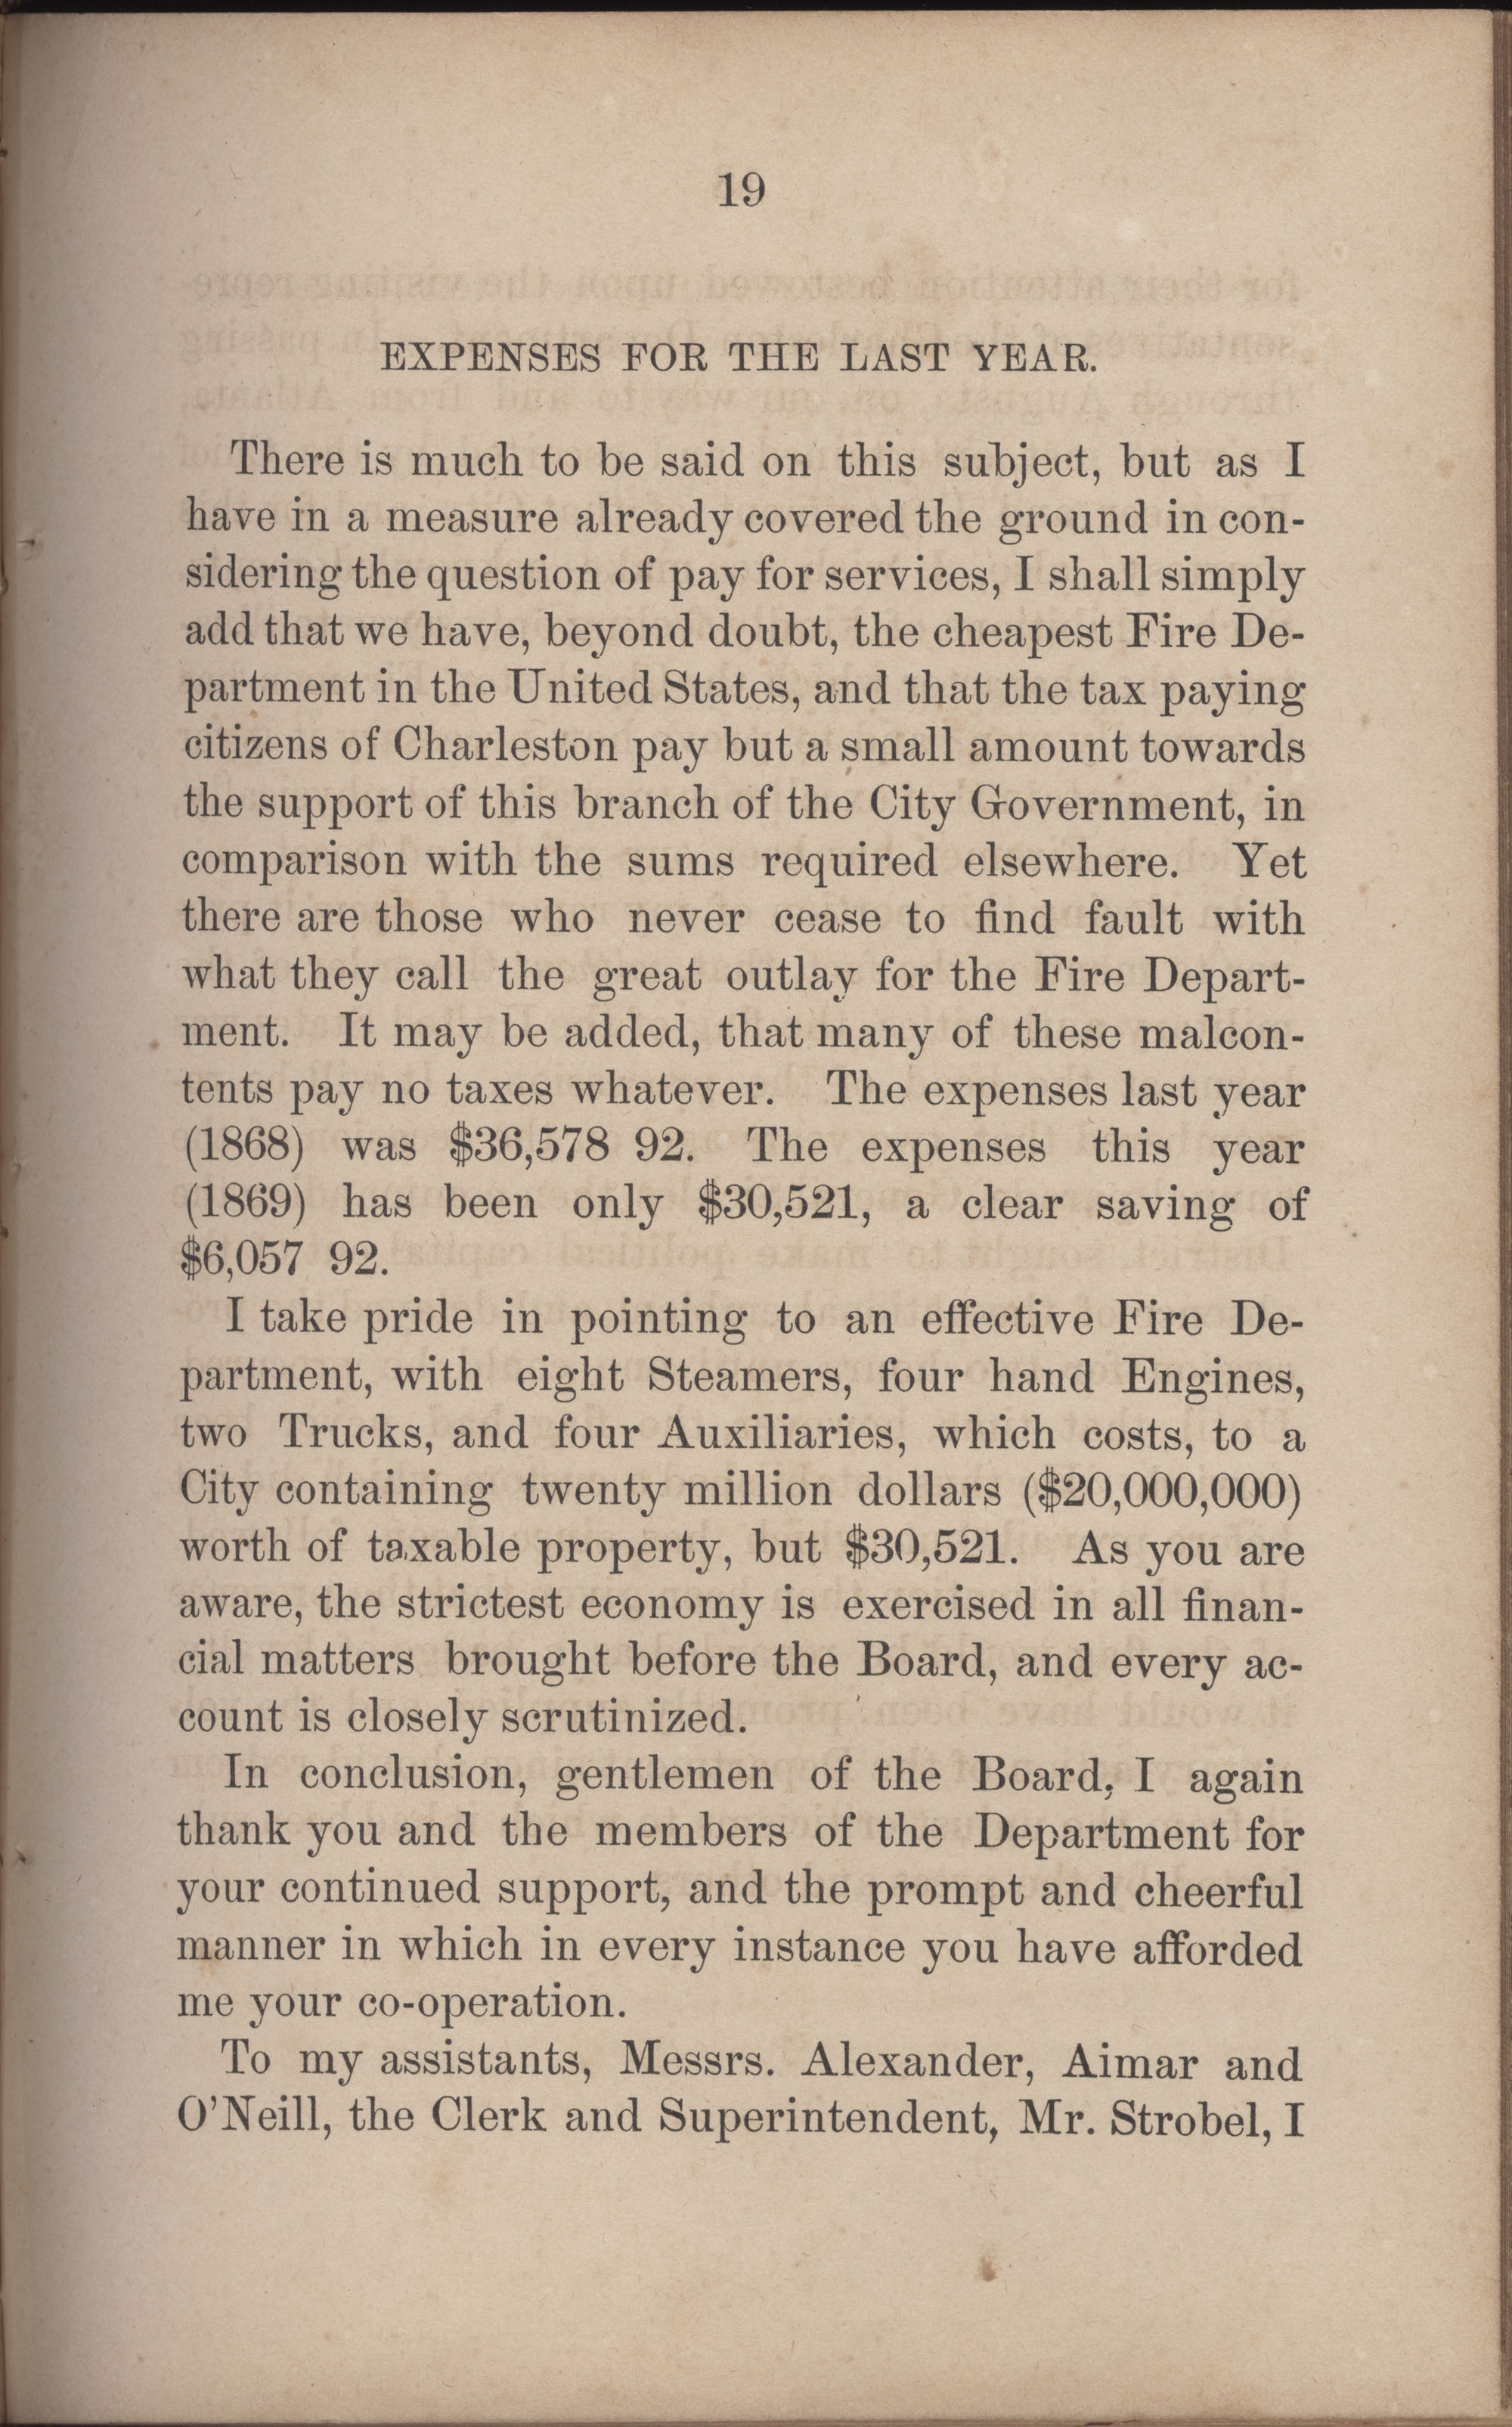 Annual Report of the Chief of the Fire Department of the City of Charleston, page 246